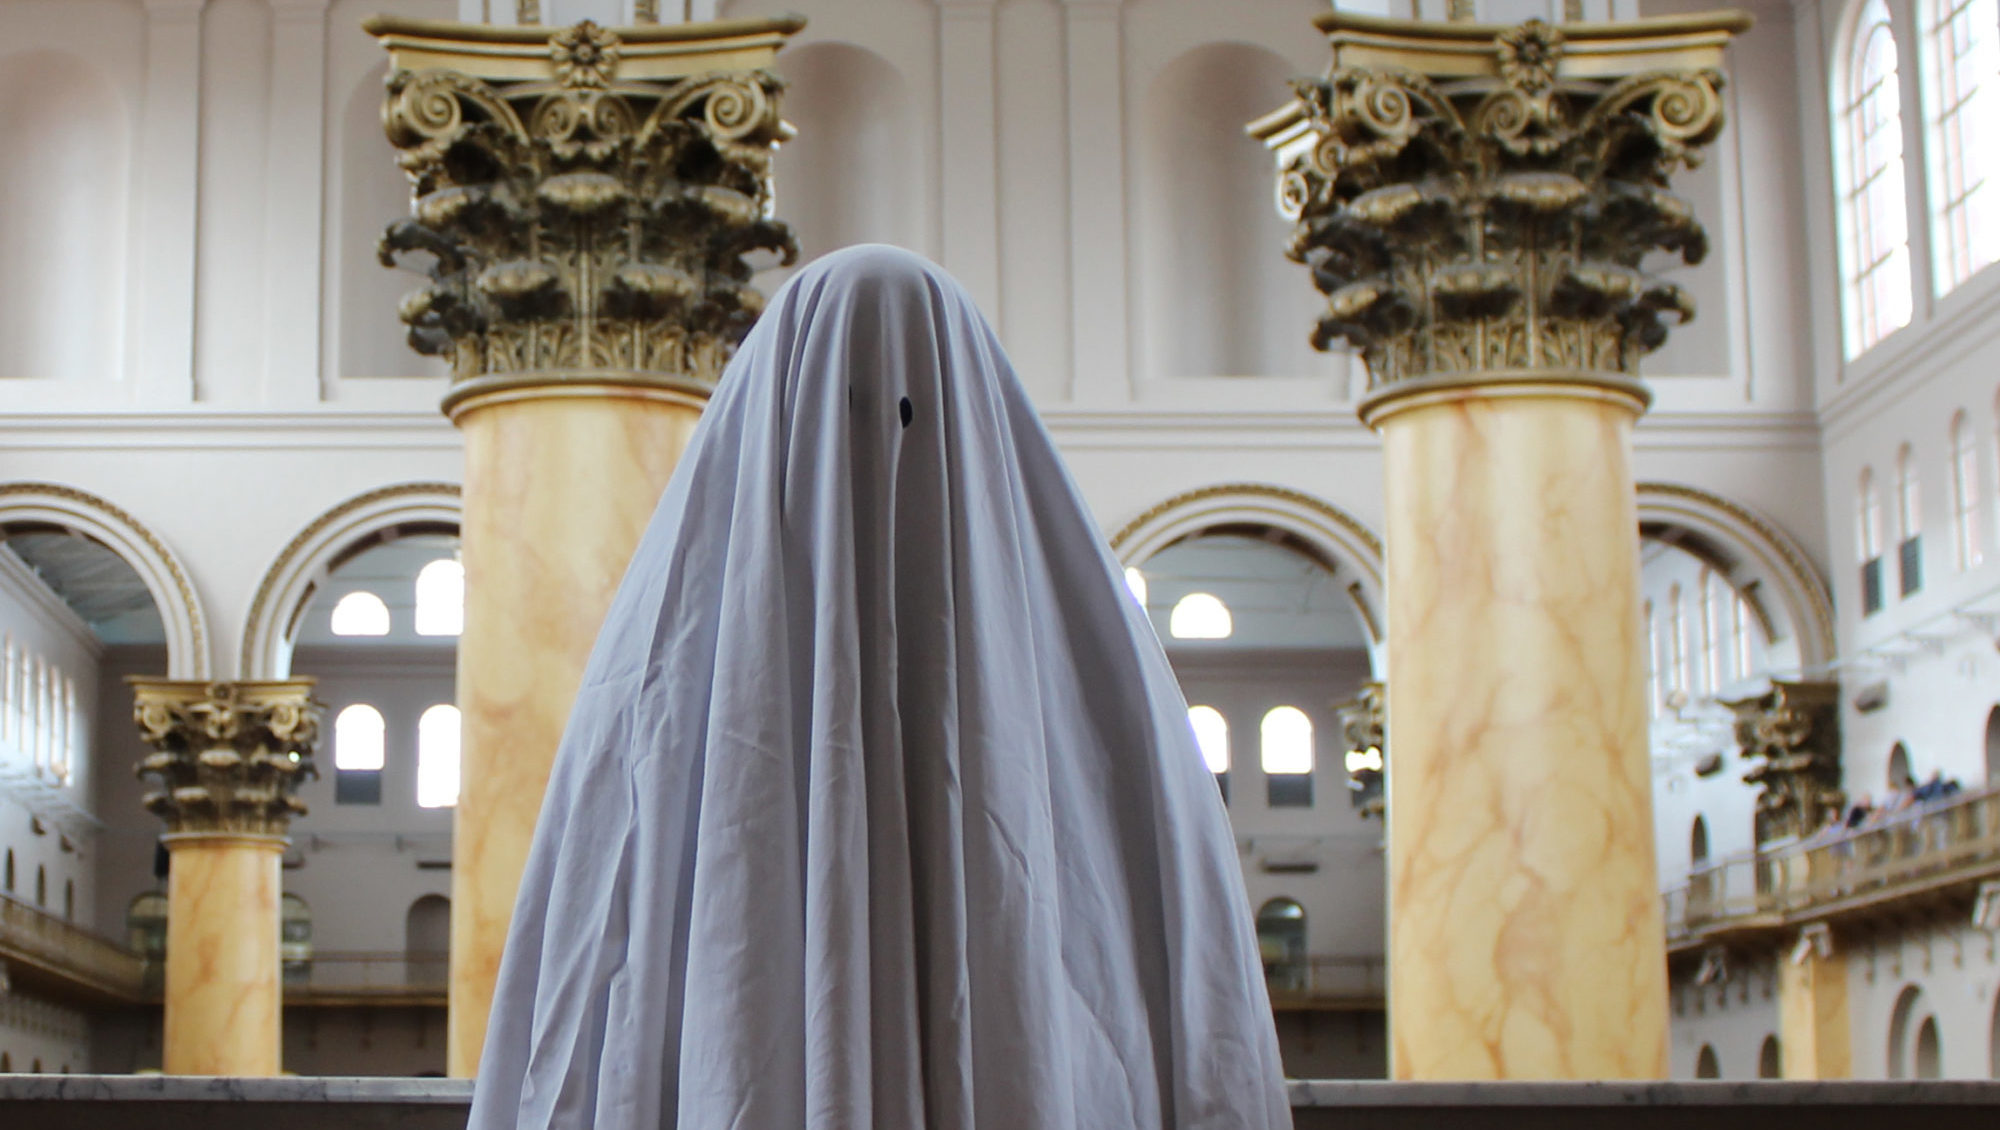 A sheet-with-eye-holes ghost stands in the middle of a historic museum building.